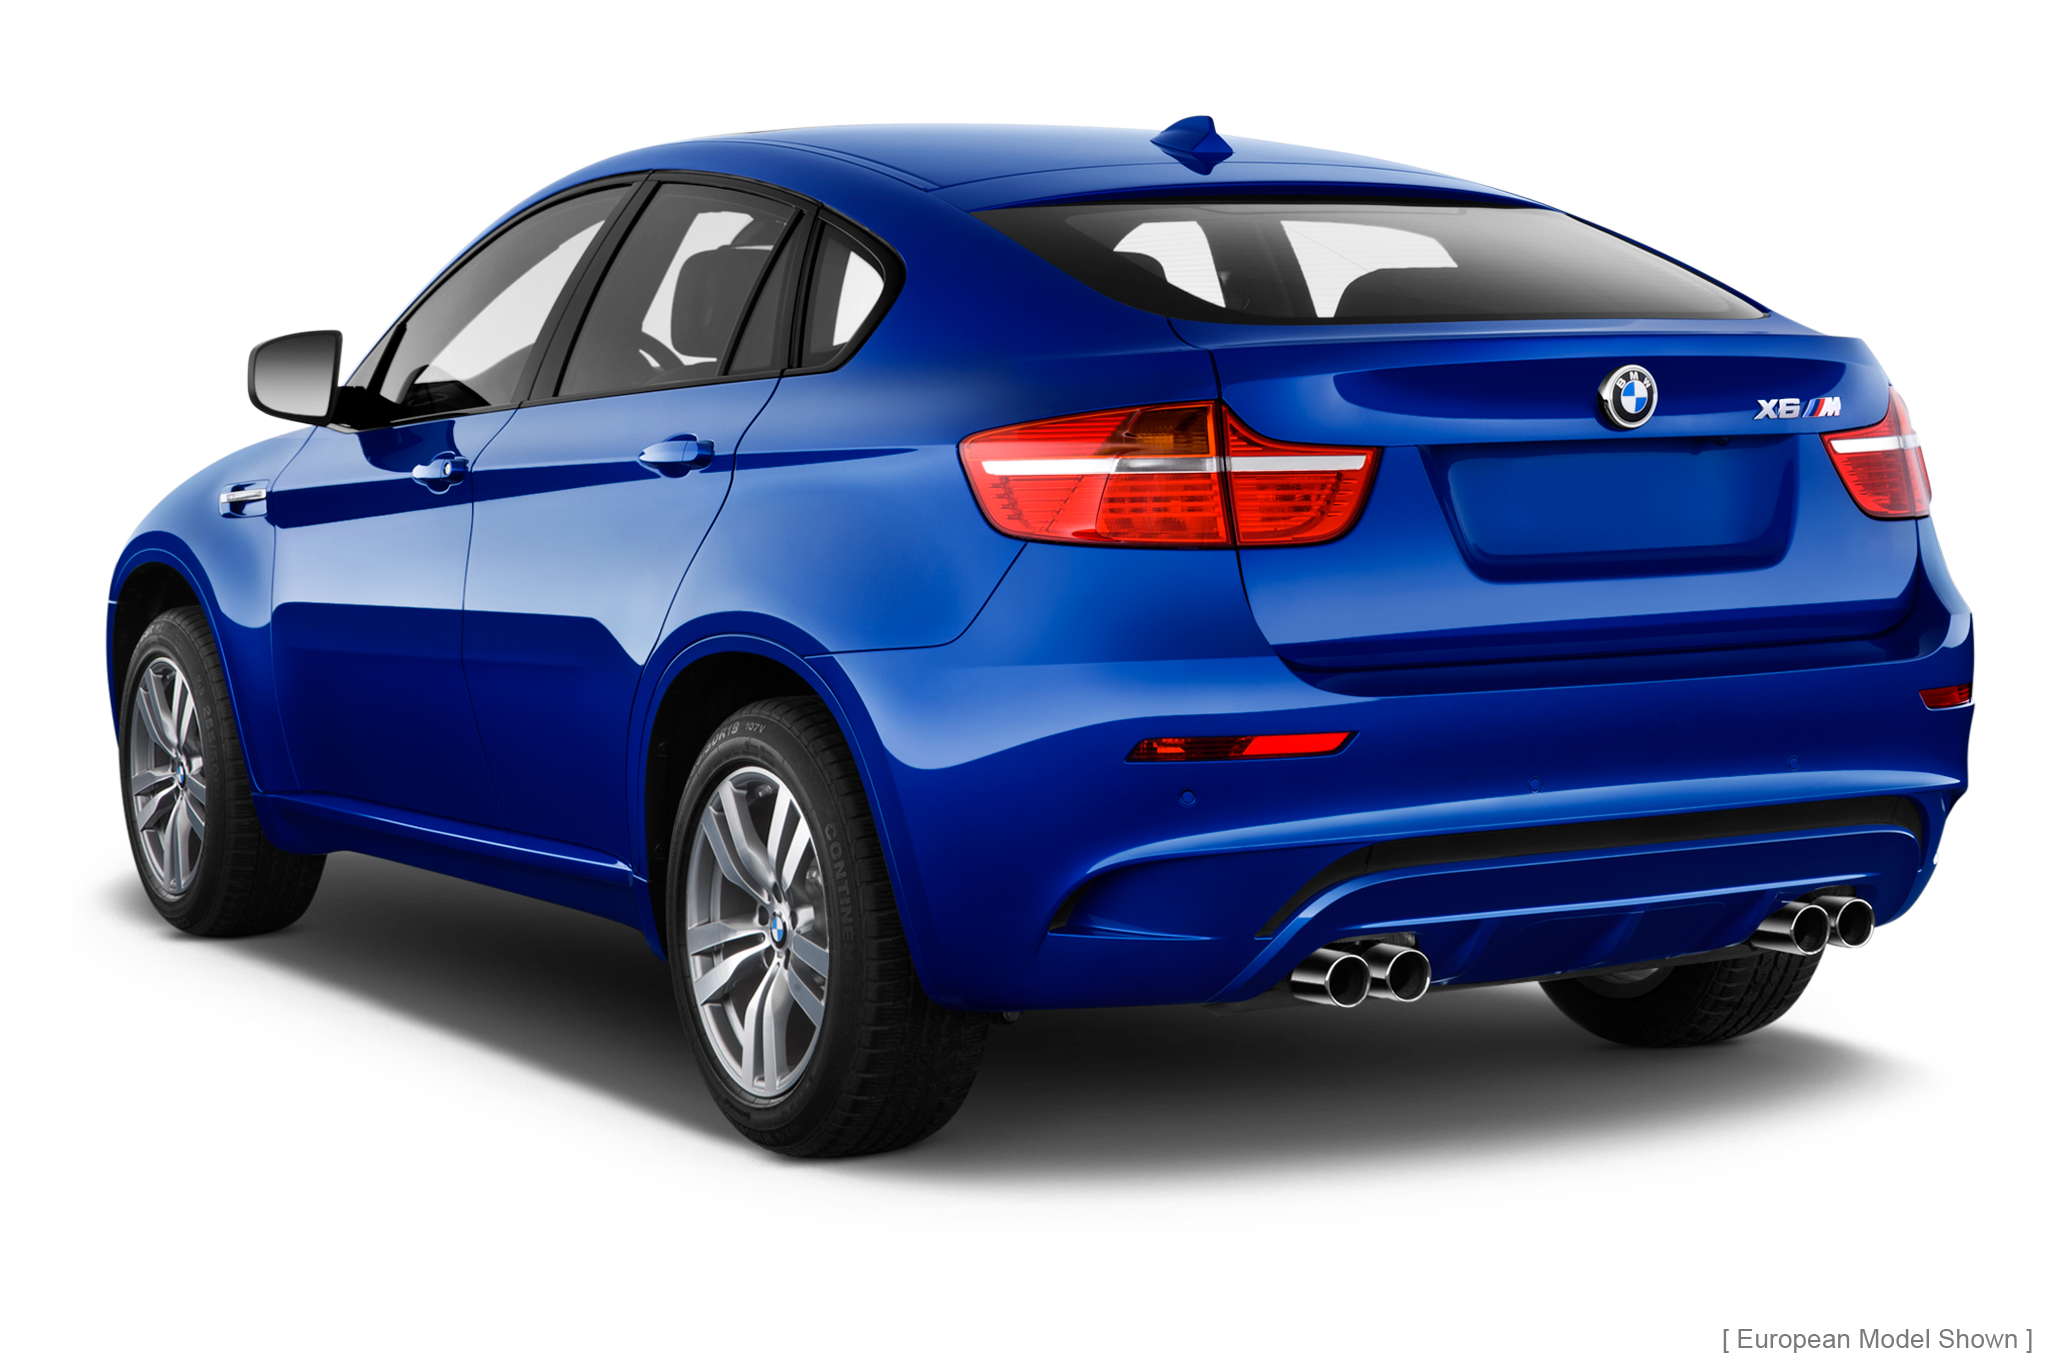 2010 bmw x5 m and 2010 bmw x6 m 2009 new york auto show coverage new car reviews concept. Black Bedroom Furniture Sets. Home Design Ideas